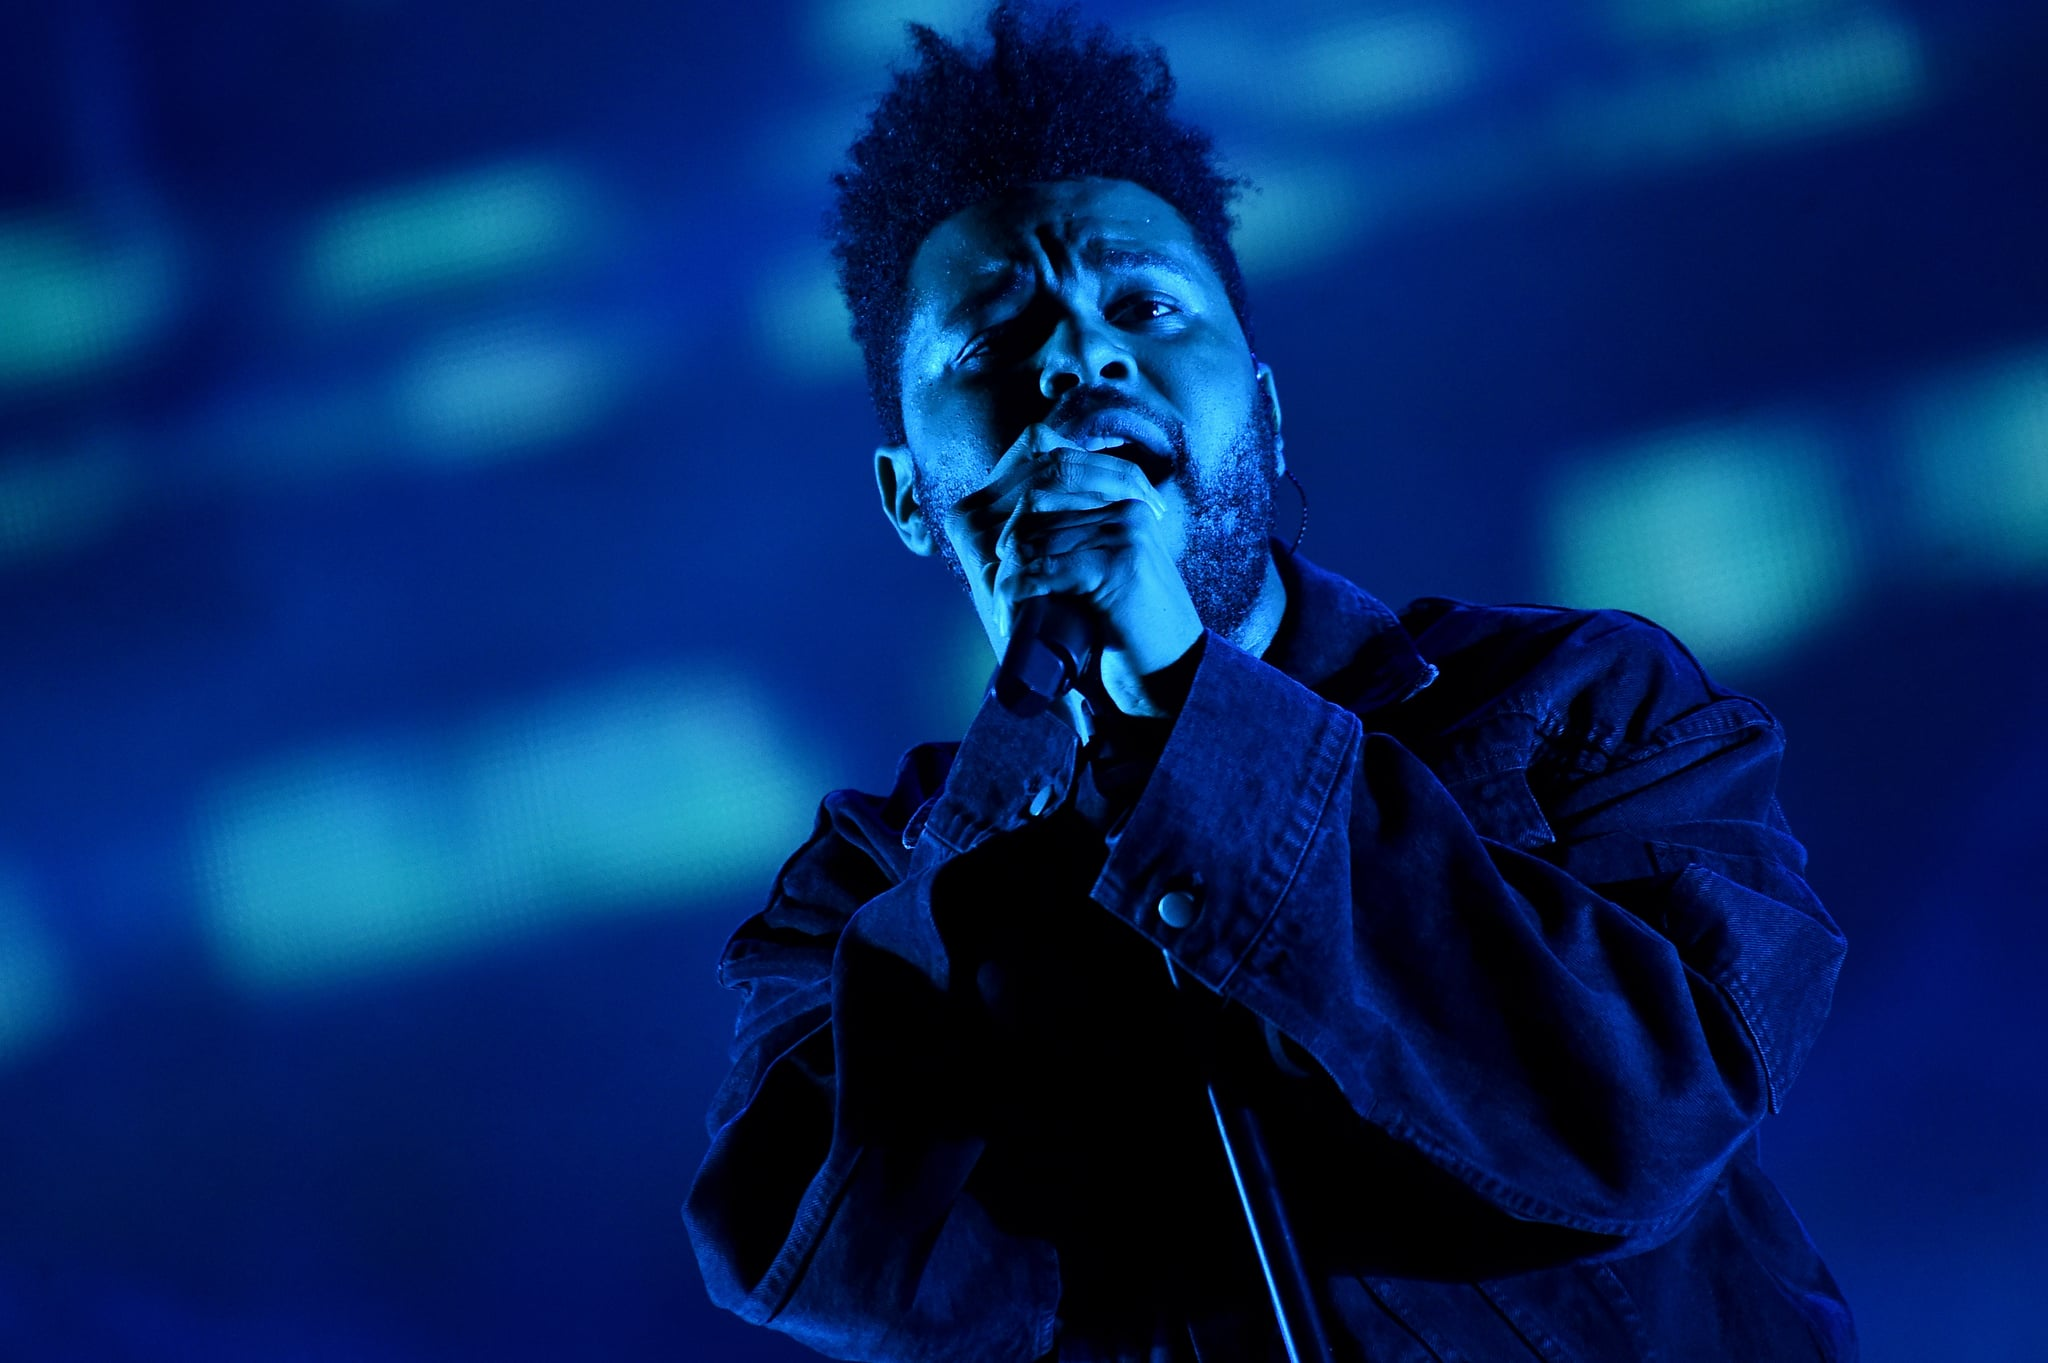 NEW YORK, NY - SEPTEMBER 29:  The Weeknd performs onstage during the 2018 Global Citizen Concert at Central Park, Great Lawn on September 29, 2018 in New York City.  (Photo by Steven Ferdman/WireImage)